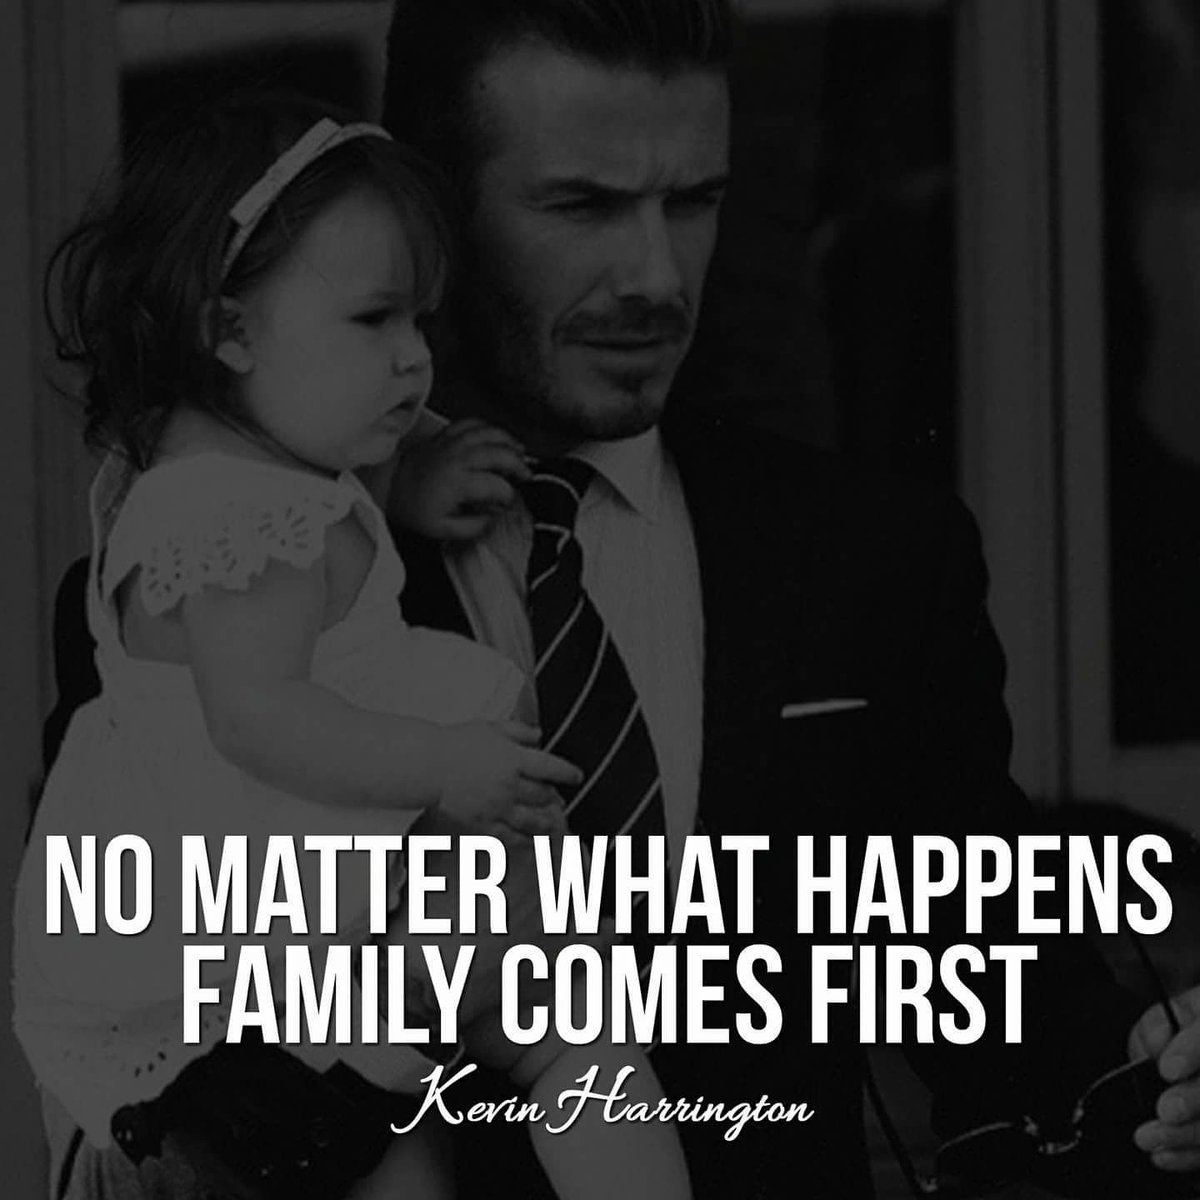 Family should always come first no matter the situation! #family #familytime #entrepreneur<br>http://pic.twitter.com/3FV017yNn7